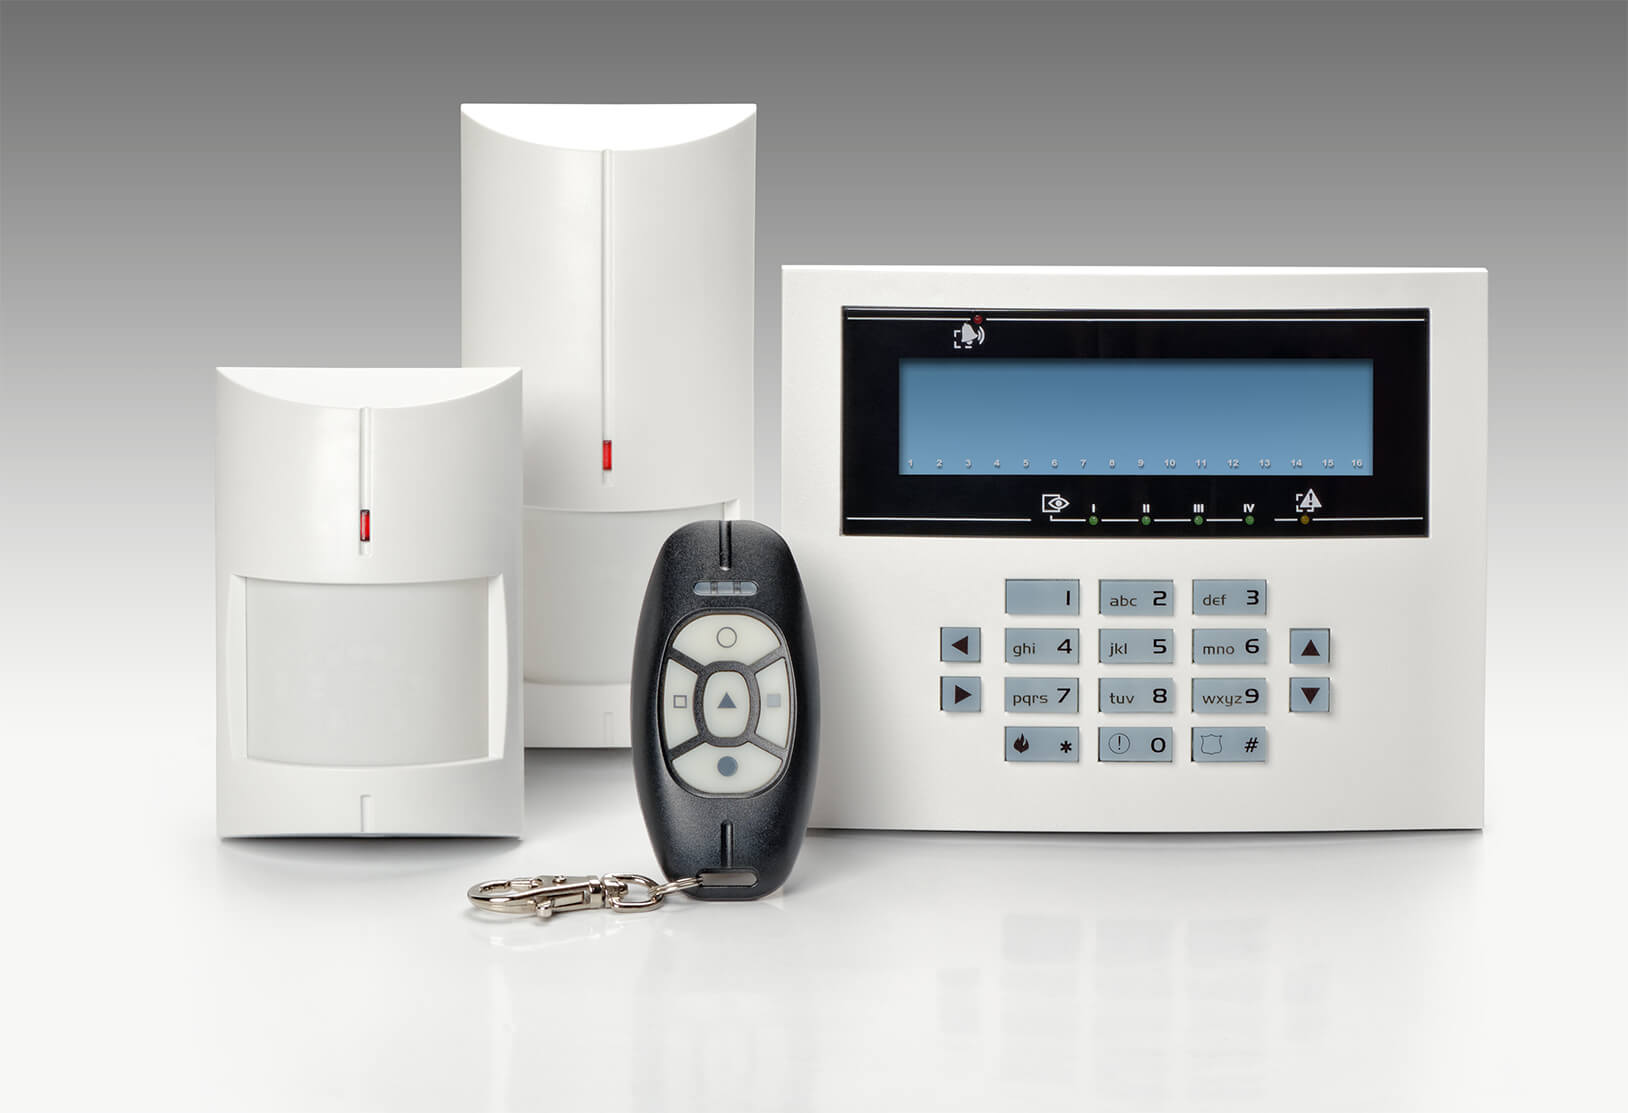 Business & Residential NACOSS Approved Burglar Alarms In Belsize Park NW3 - Local Belsize Park NW3 security company.Call 02078872244 - Dedicated to Safety & Security. Companies, shops and homes ..